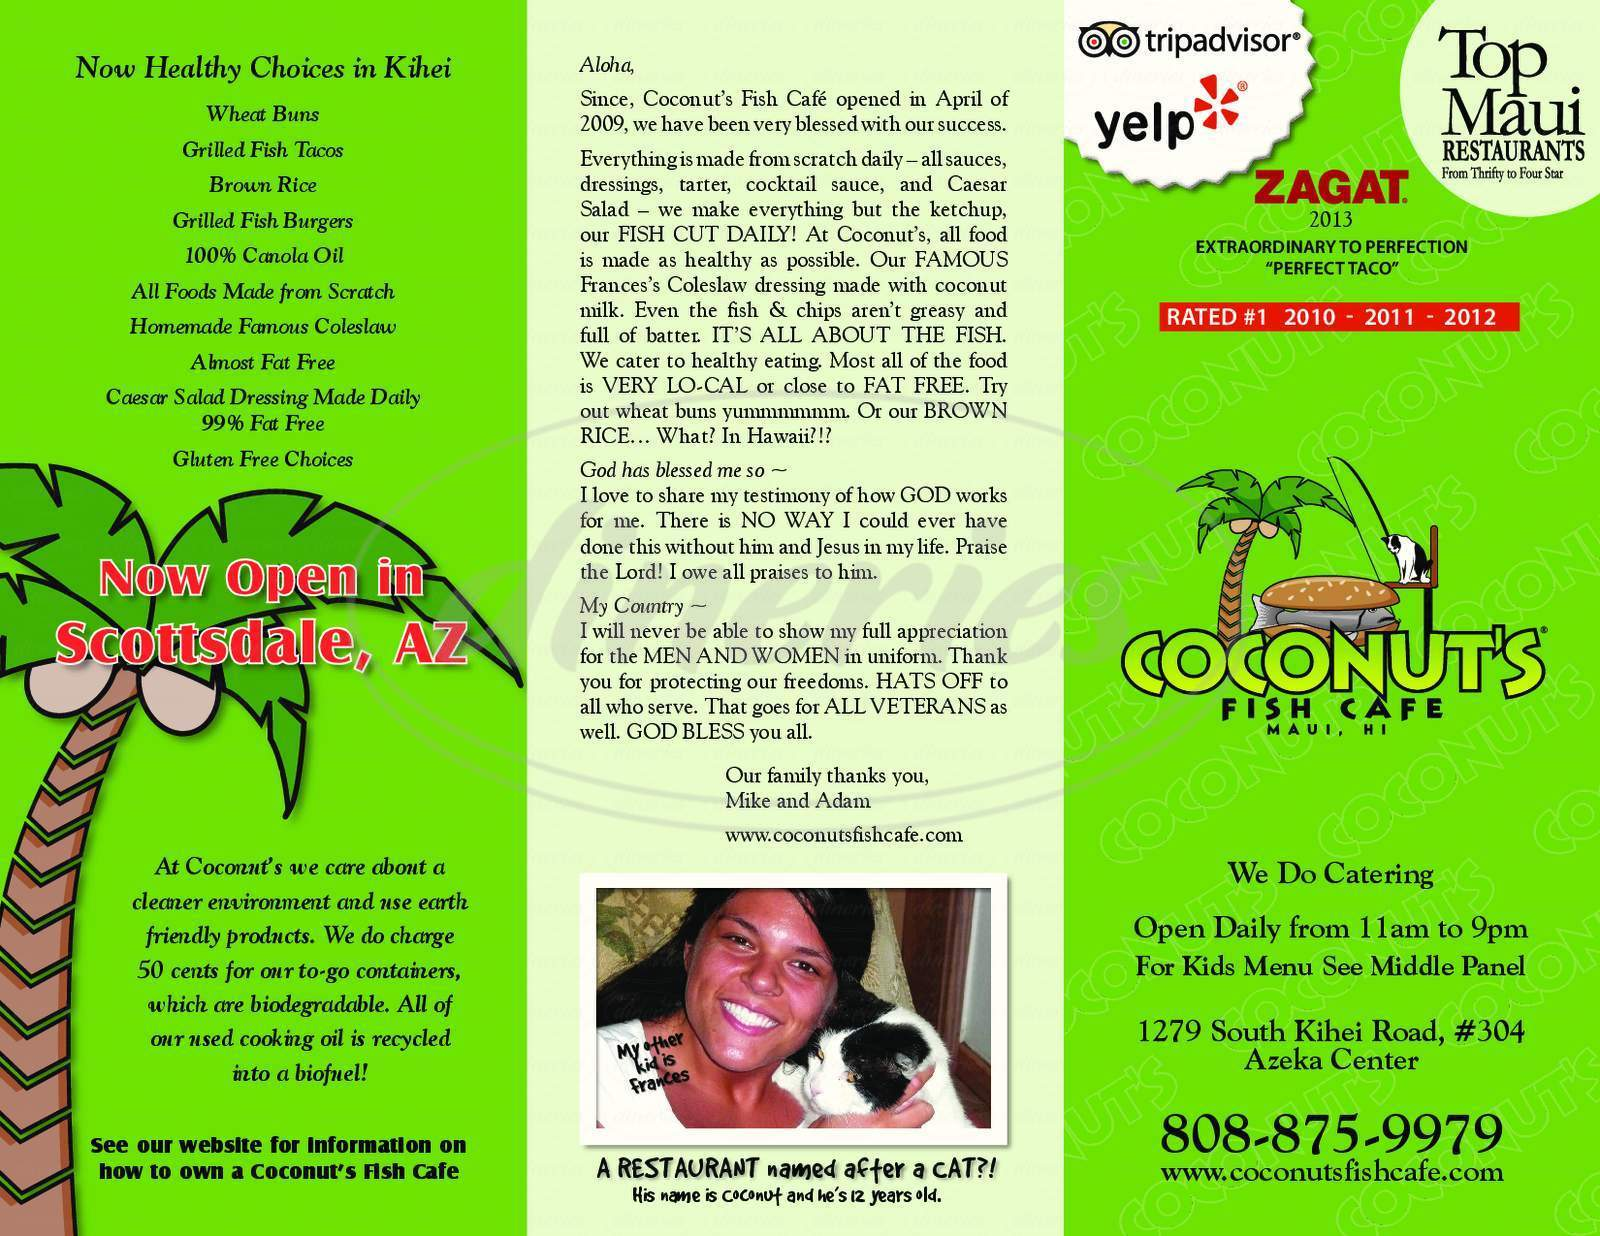 menu for Coconut's Fish Cafe